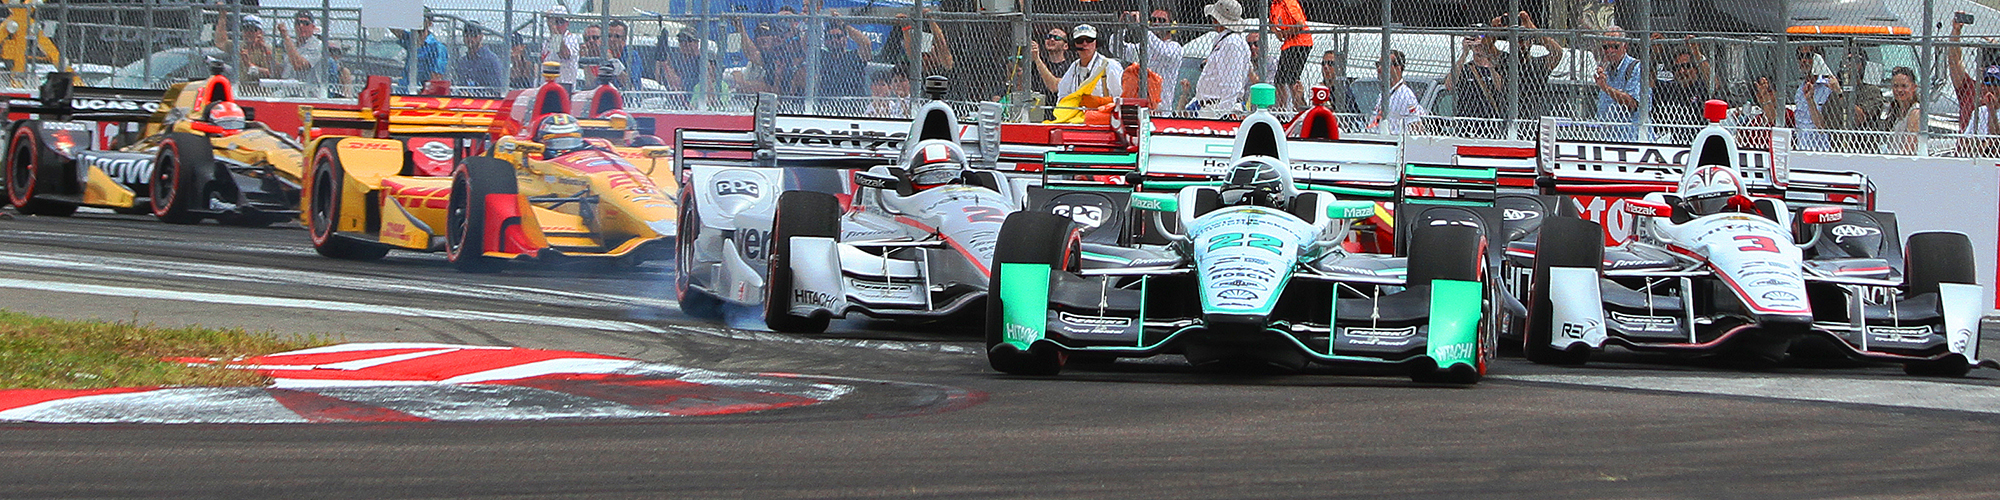 It has been six long months since the end of the 2015 IndyCar season that has left drivers and fans alike waiting out the winter months eagerly anticipating the start of the Verizon IndyCar 2016 season. The entire world of motorsports will be watching as the green flag drops this weekend for Sunday's Firestone Grand Prix of St. Petersburg. There are plenty of storylines taking place as the 22-car field prepares for what is expected to be one of the most exciting seasons in recent memory.